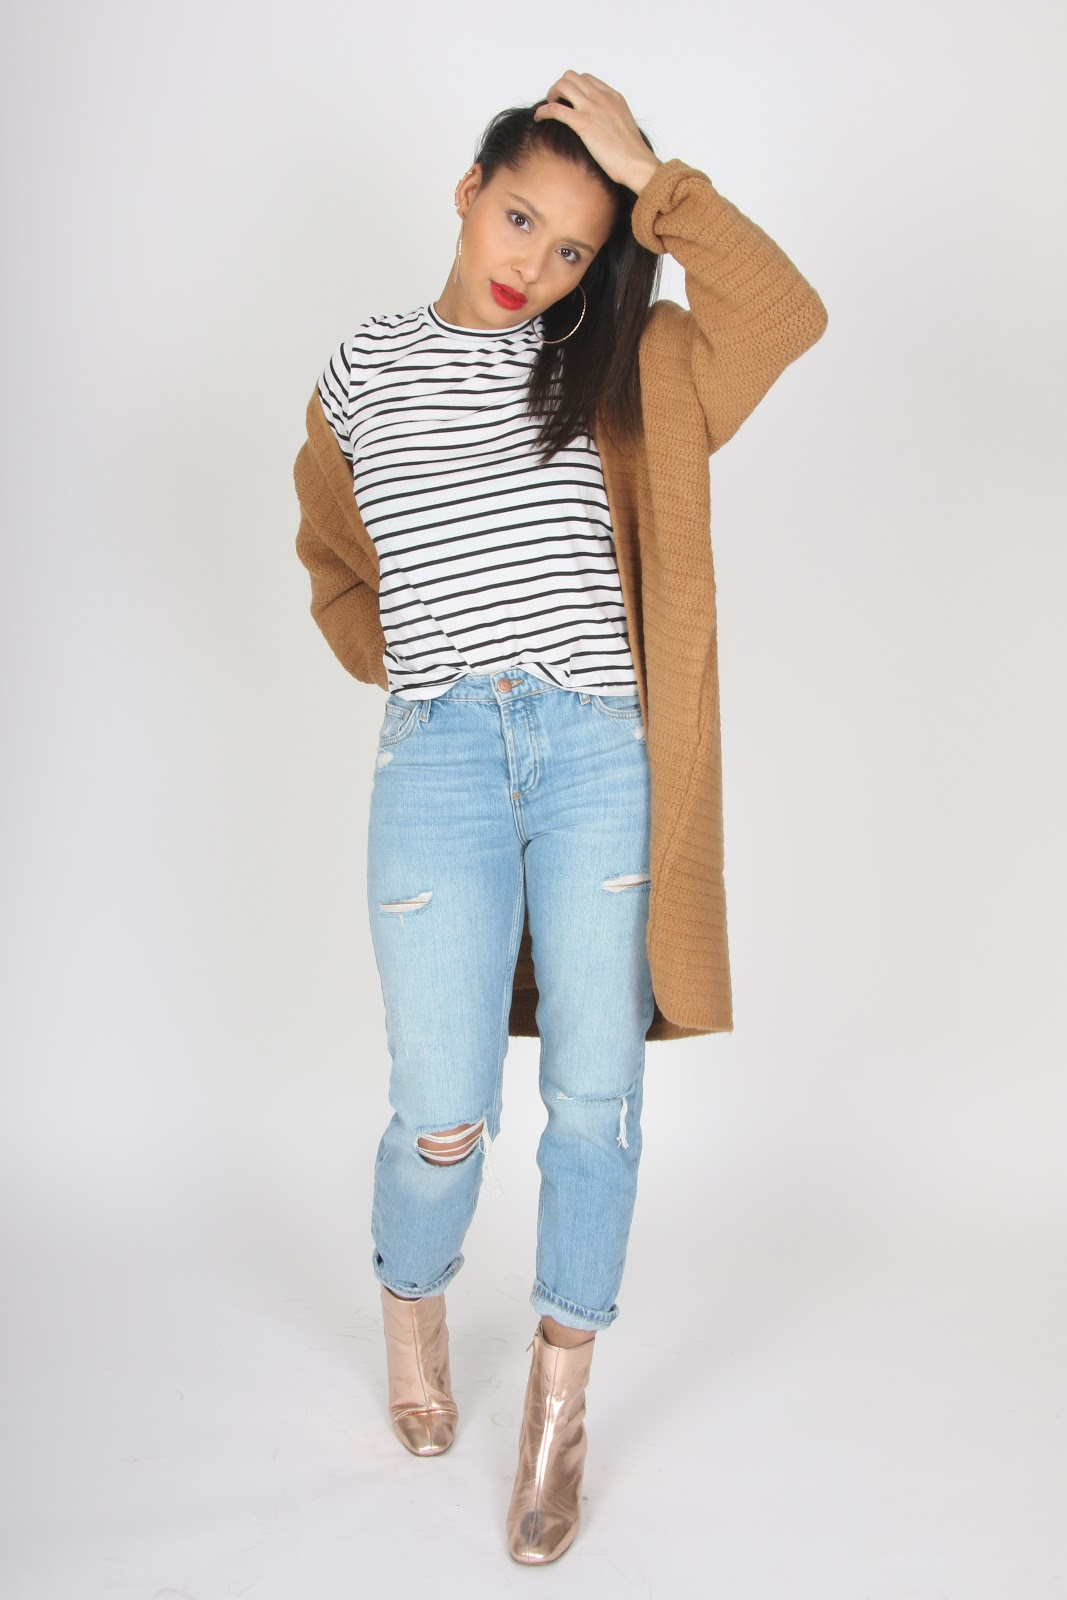 denim, riverislandboots, asos, asosboots, riverislandjeans,